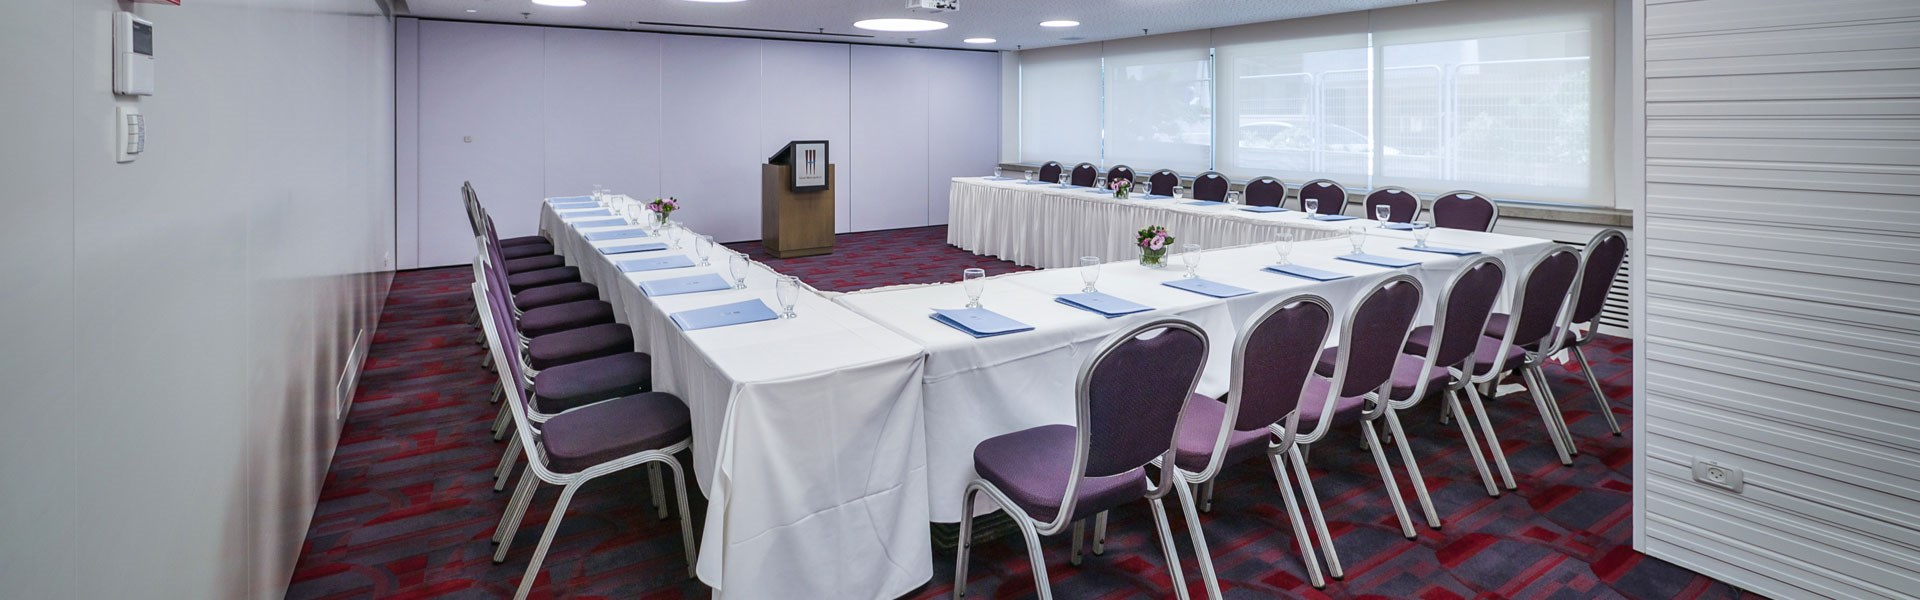 Meeting room in Metropolitan Hotel